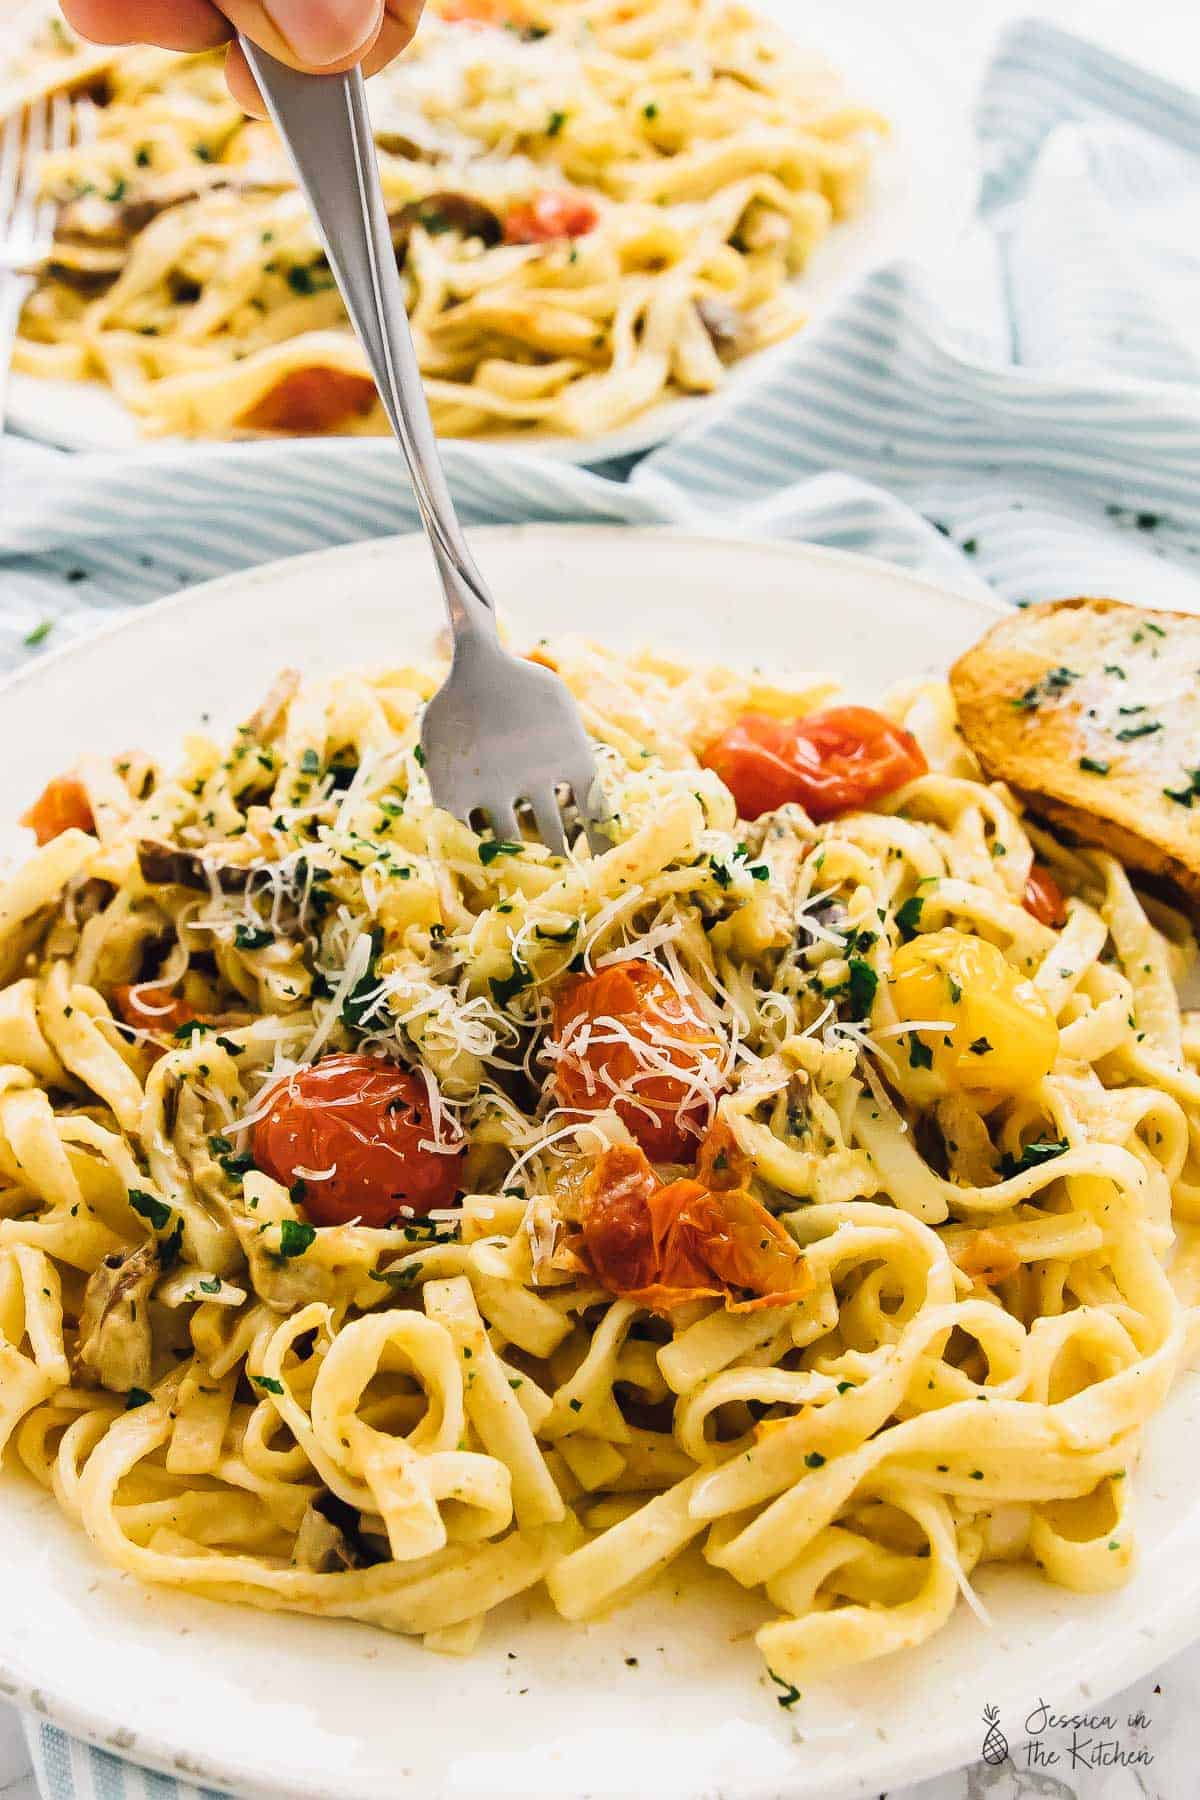 A fork in a plate of fettuccine pasta with burst tomatoes, fresh herbs, and Parmesan cheese